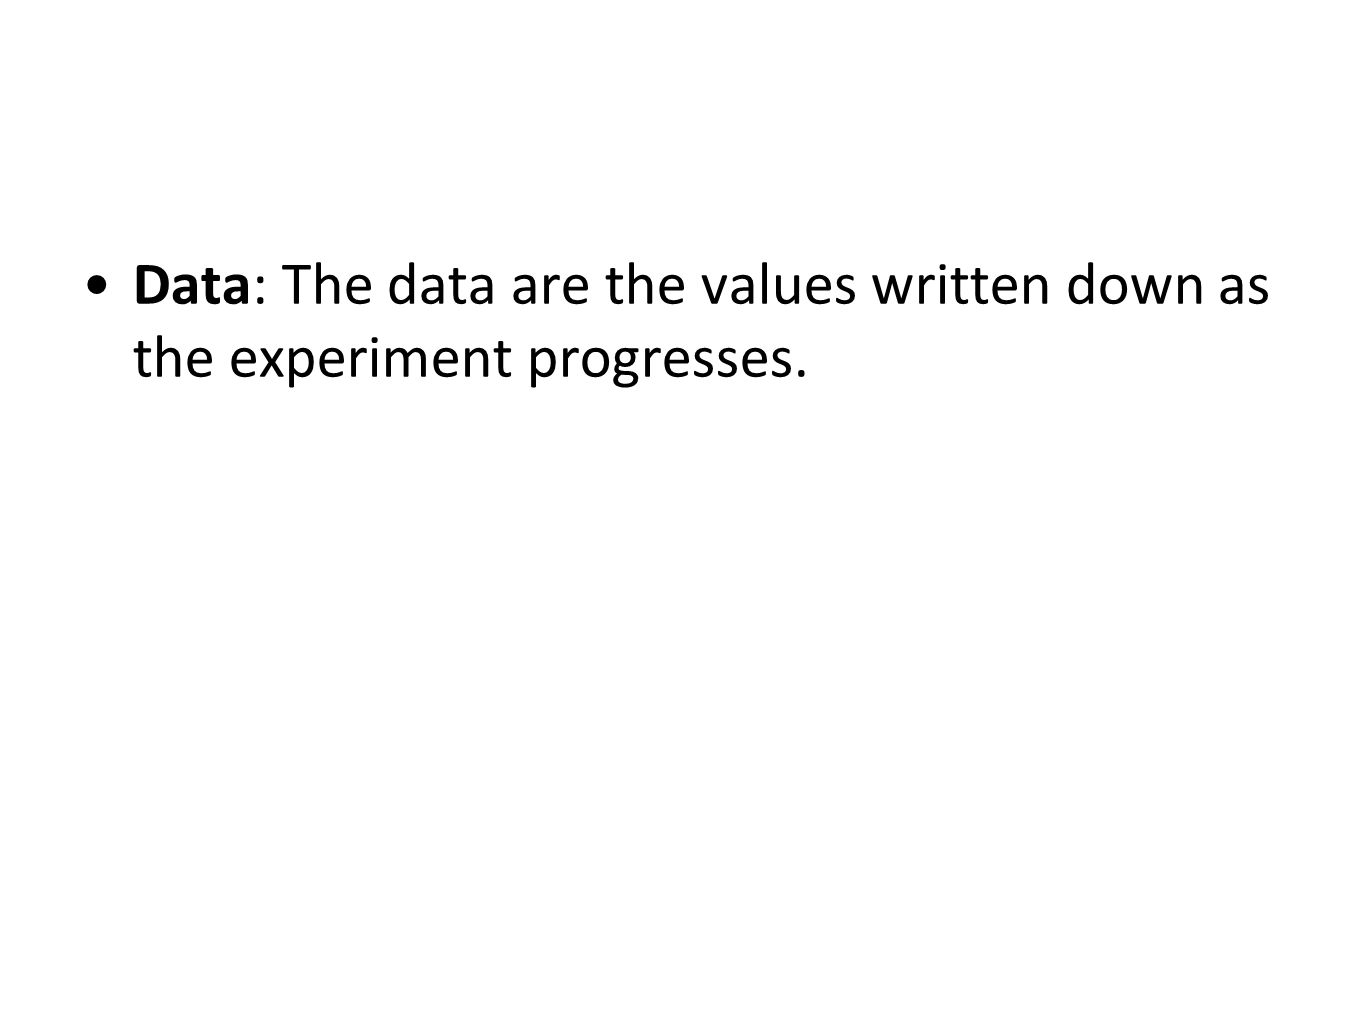 Data: The data are the values written down as the experiment progresses.